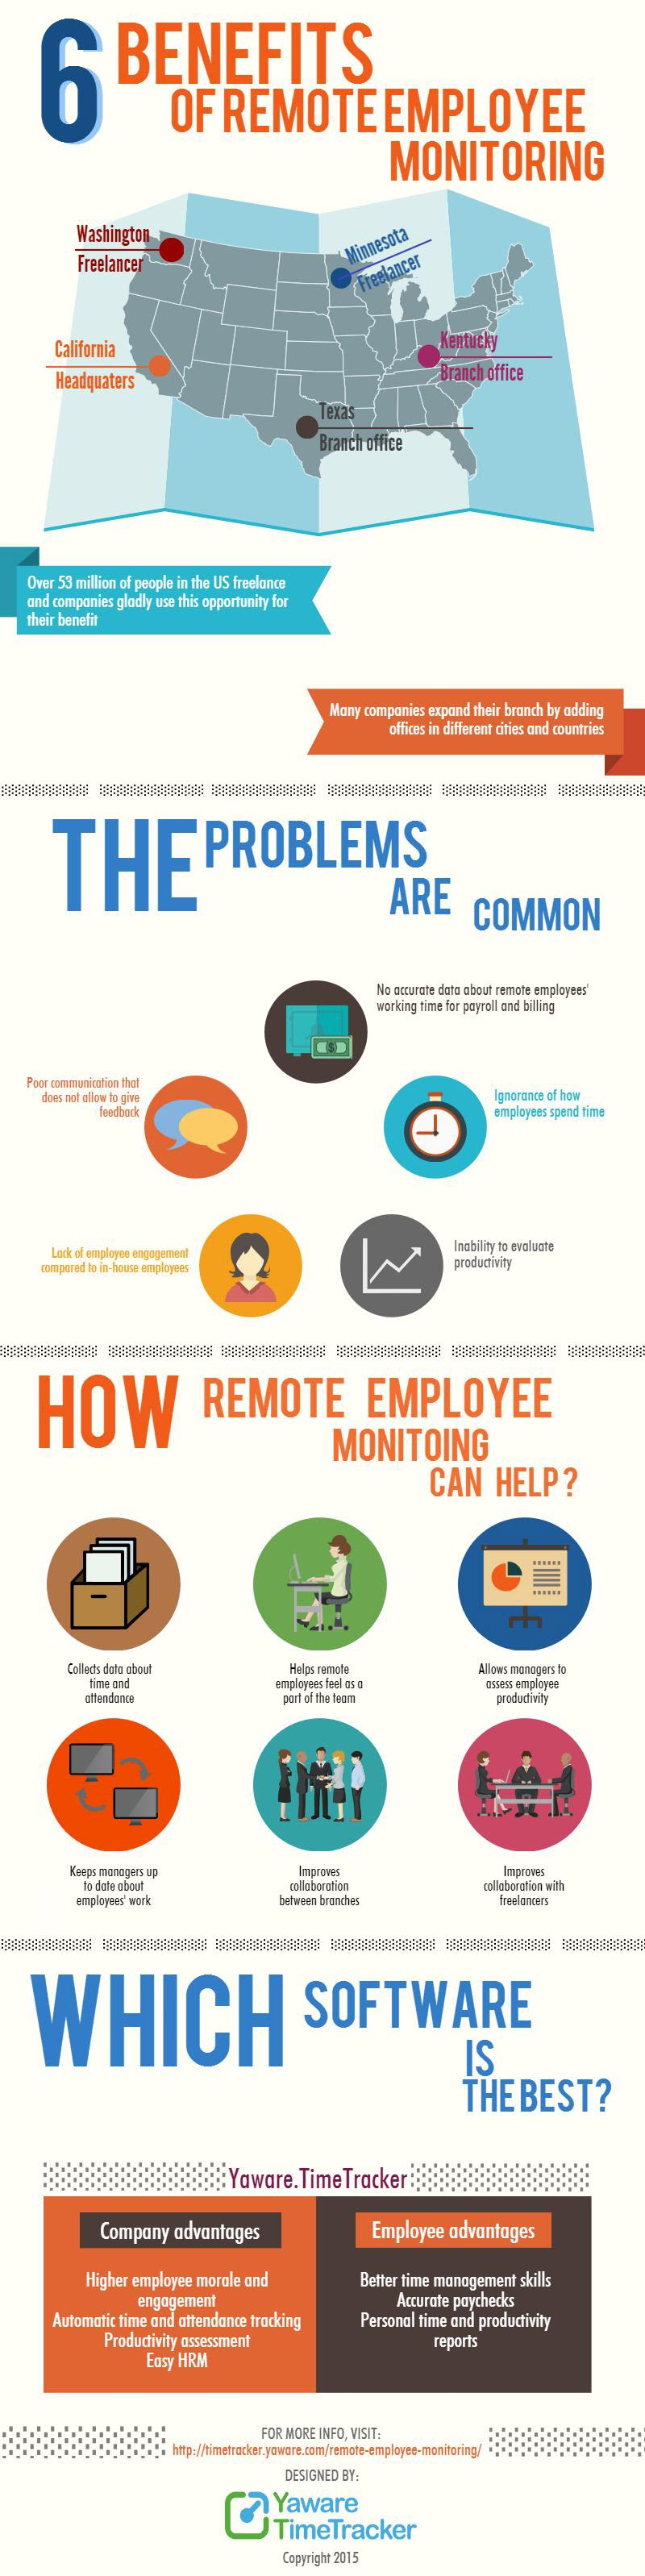 6 Benefits of Remote Employee Monitoring | Visual ly